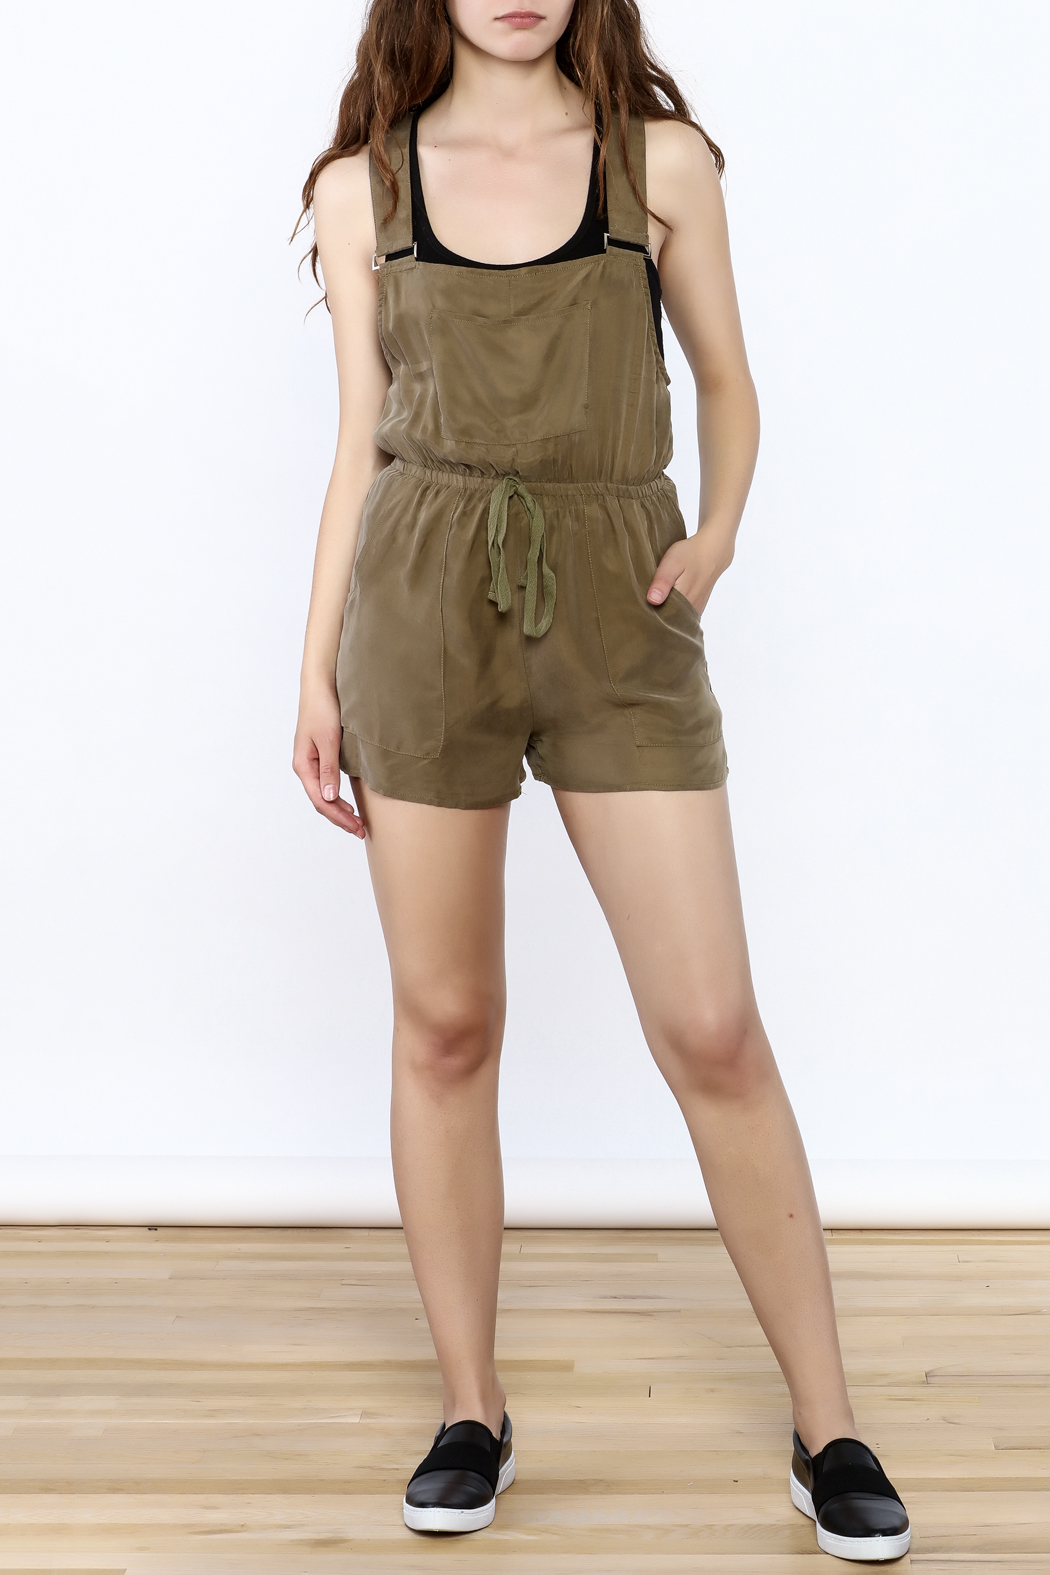 Honey Punch Olive Overall Romper - Front Full Image